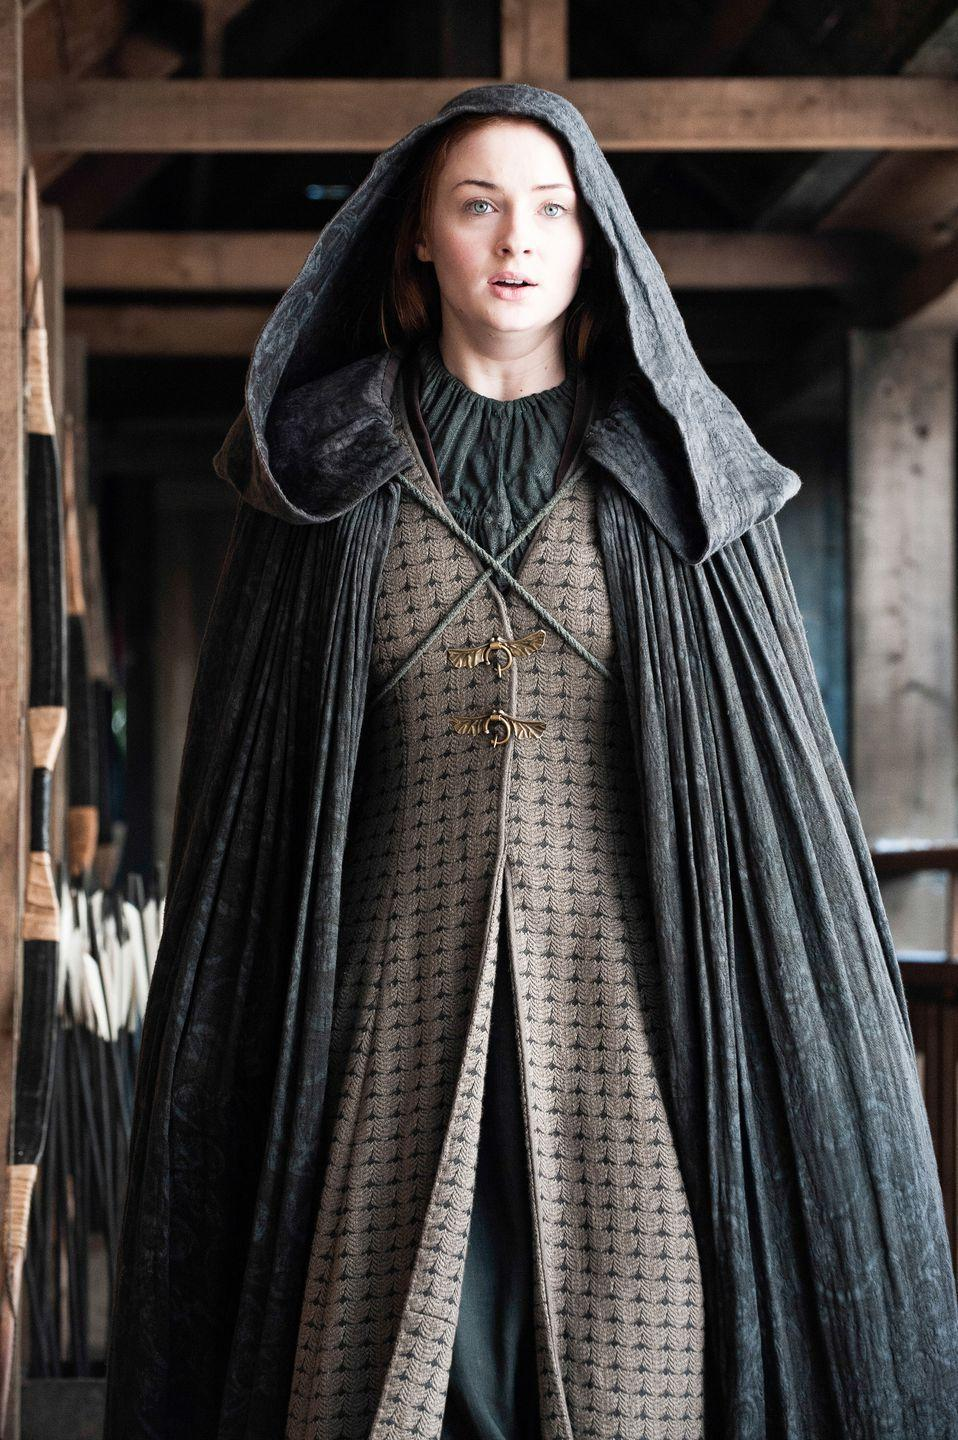 <p>When she escapes Winterfell, Sansa wears an outfit that looks like something taken from her mother, Catelyn's, closet. That's fitting, since the strength it takes to make a break for it is very reminiscent of the late Stark matron. </p>